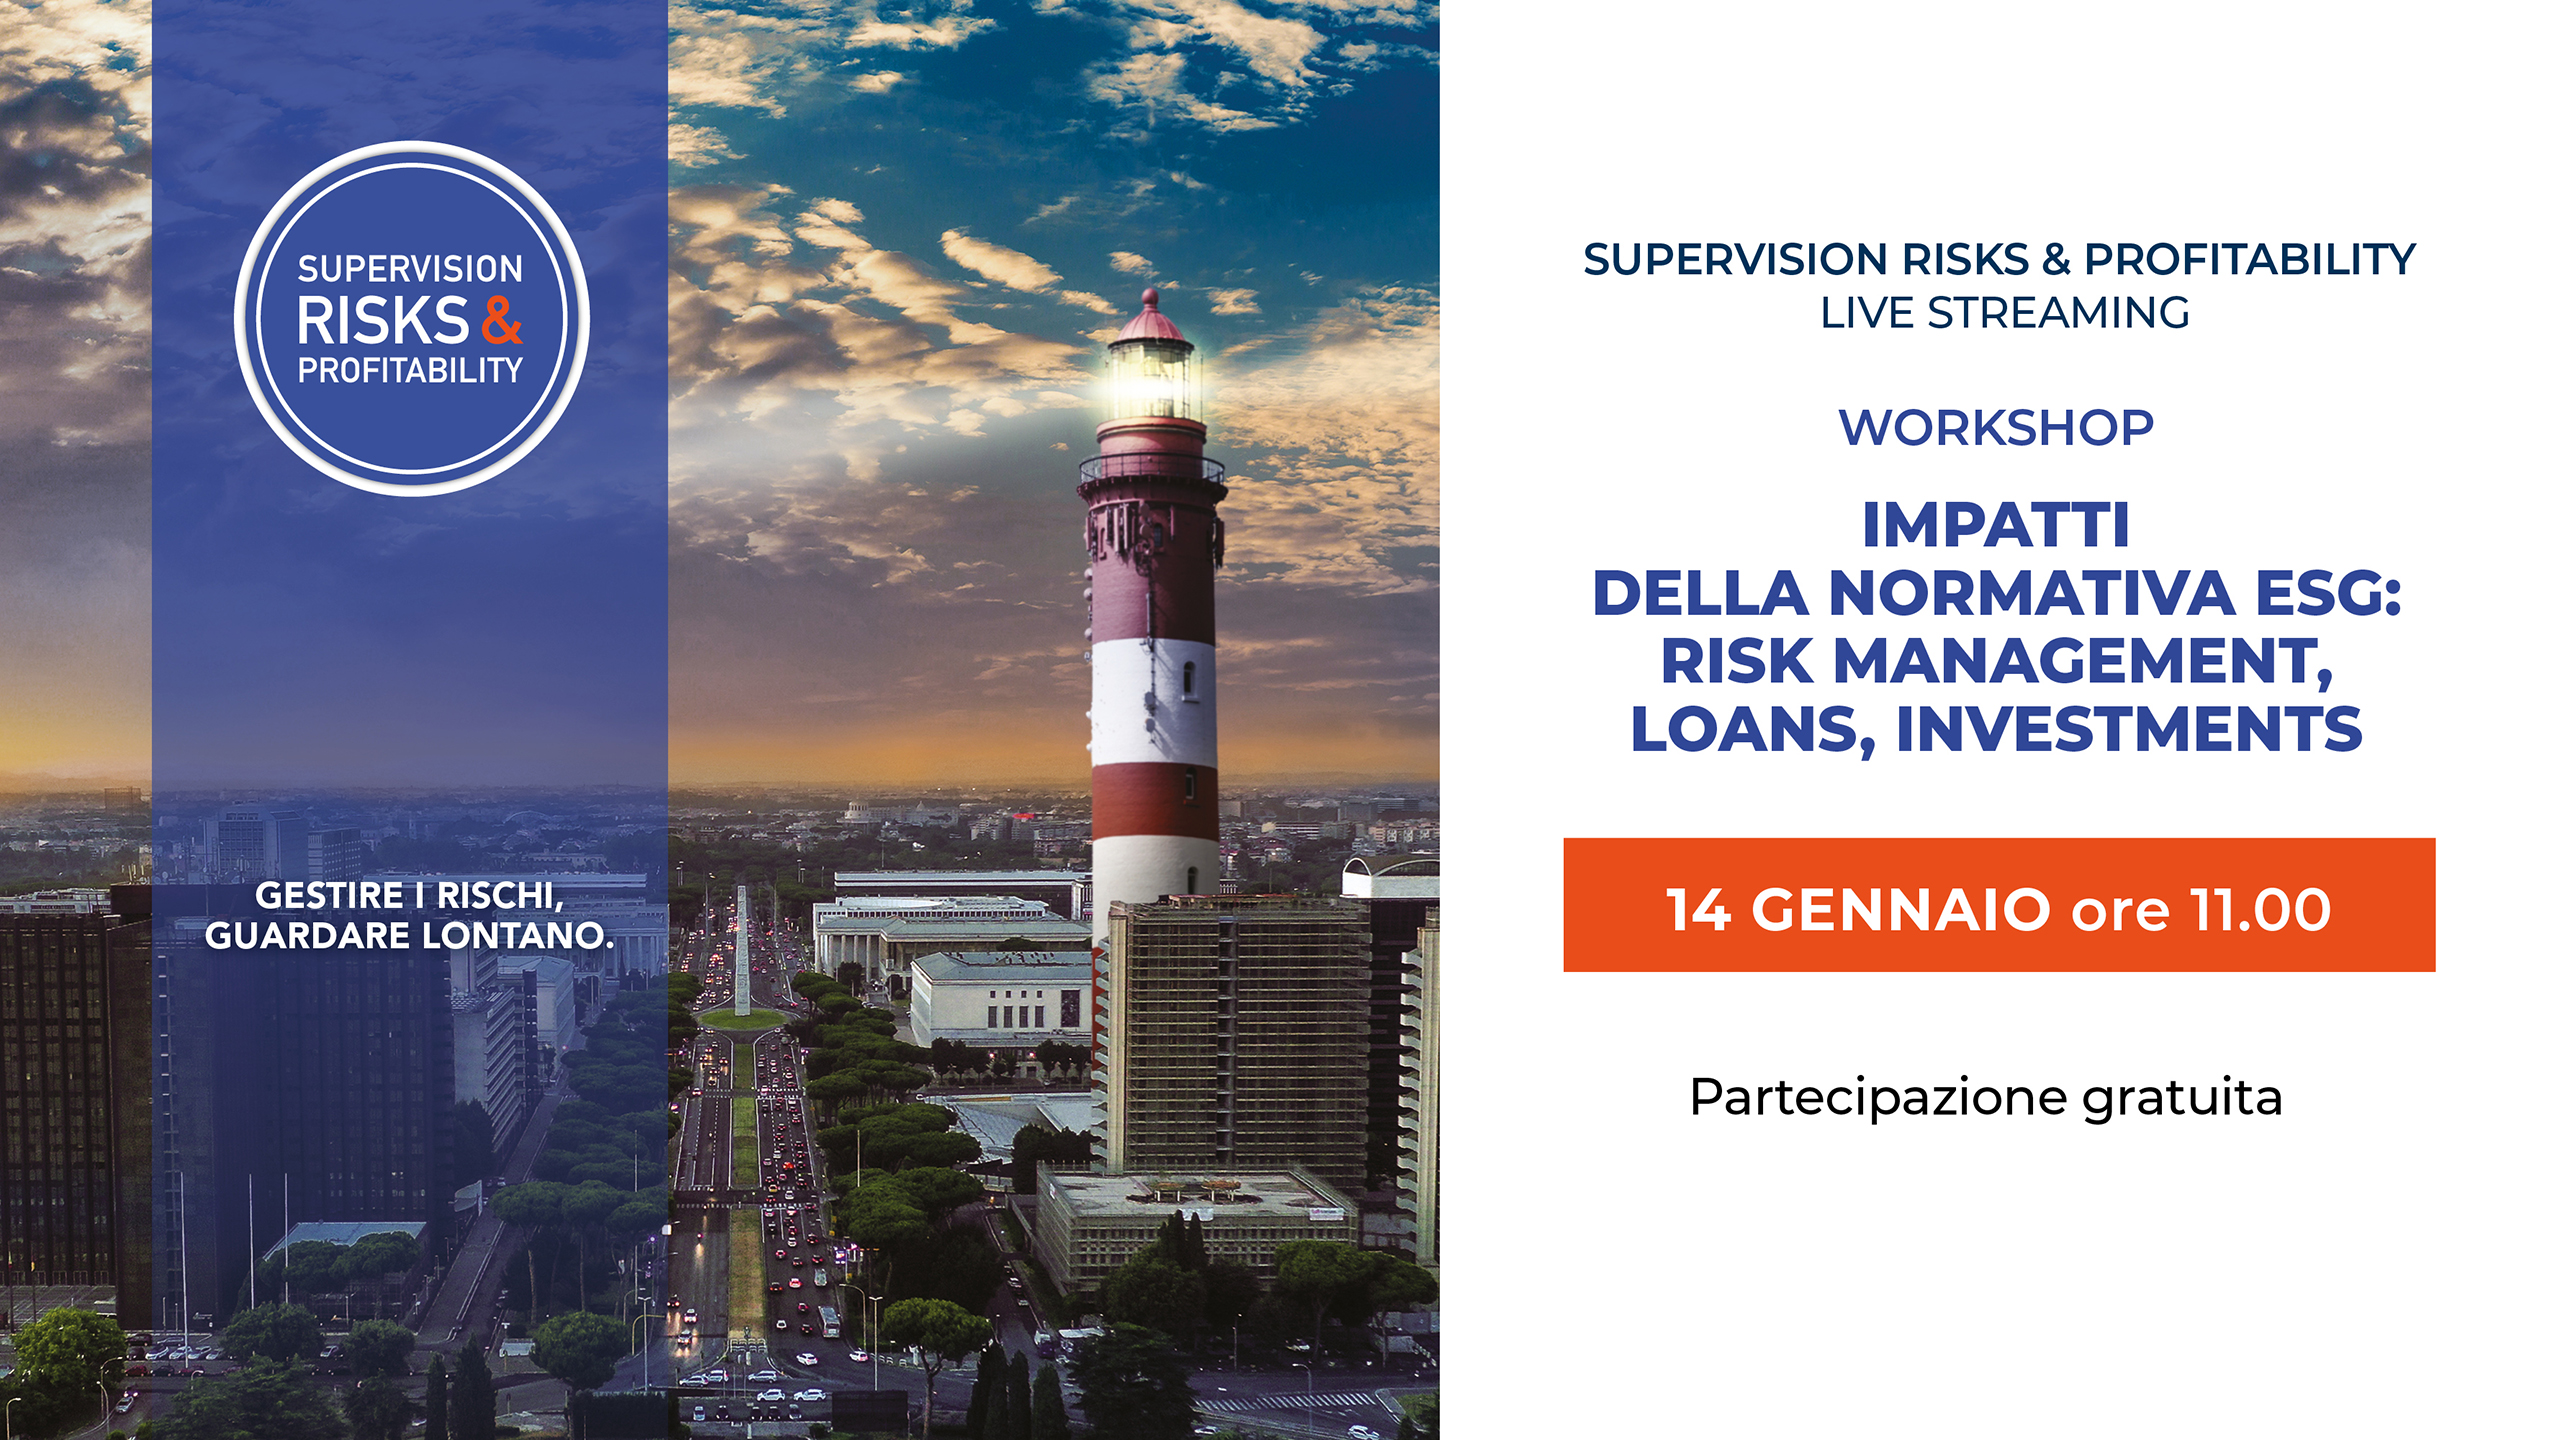 Workshop BDO - Supervision, Risks & Profitability